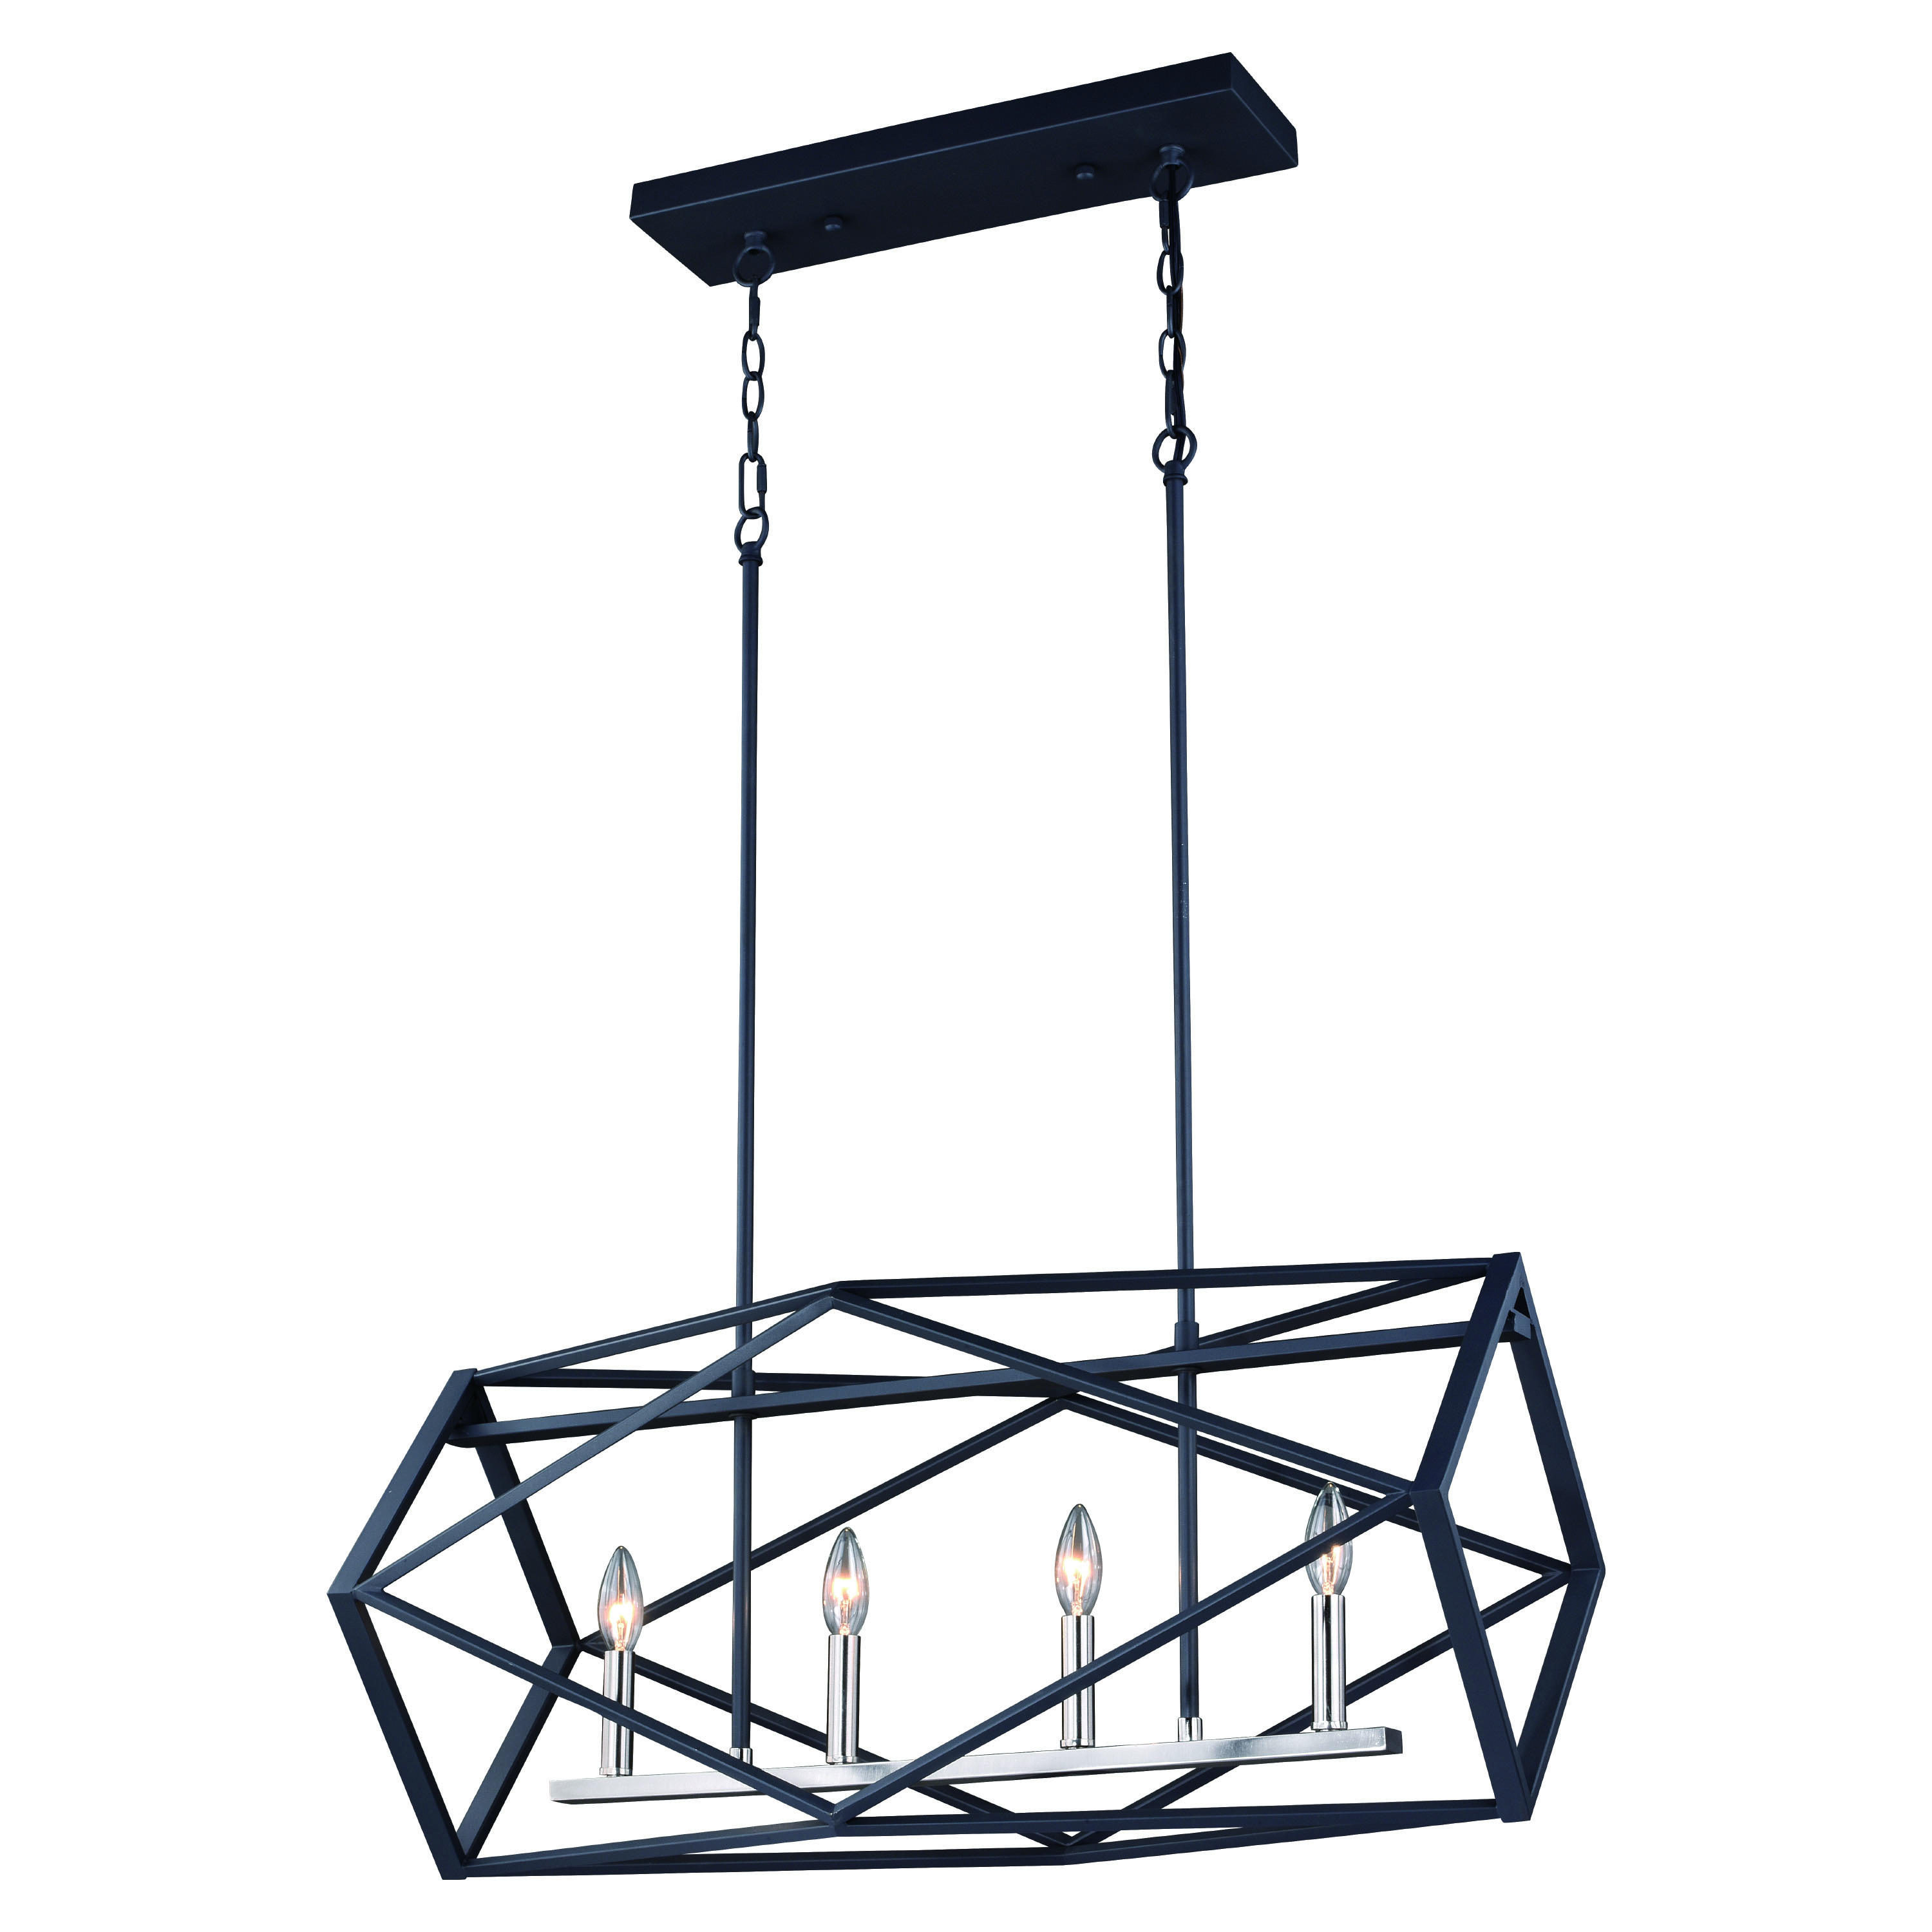 Hailey 4 Light Linear Chandelier Black Graphite And Satin